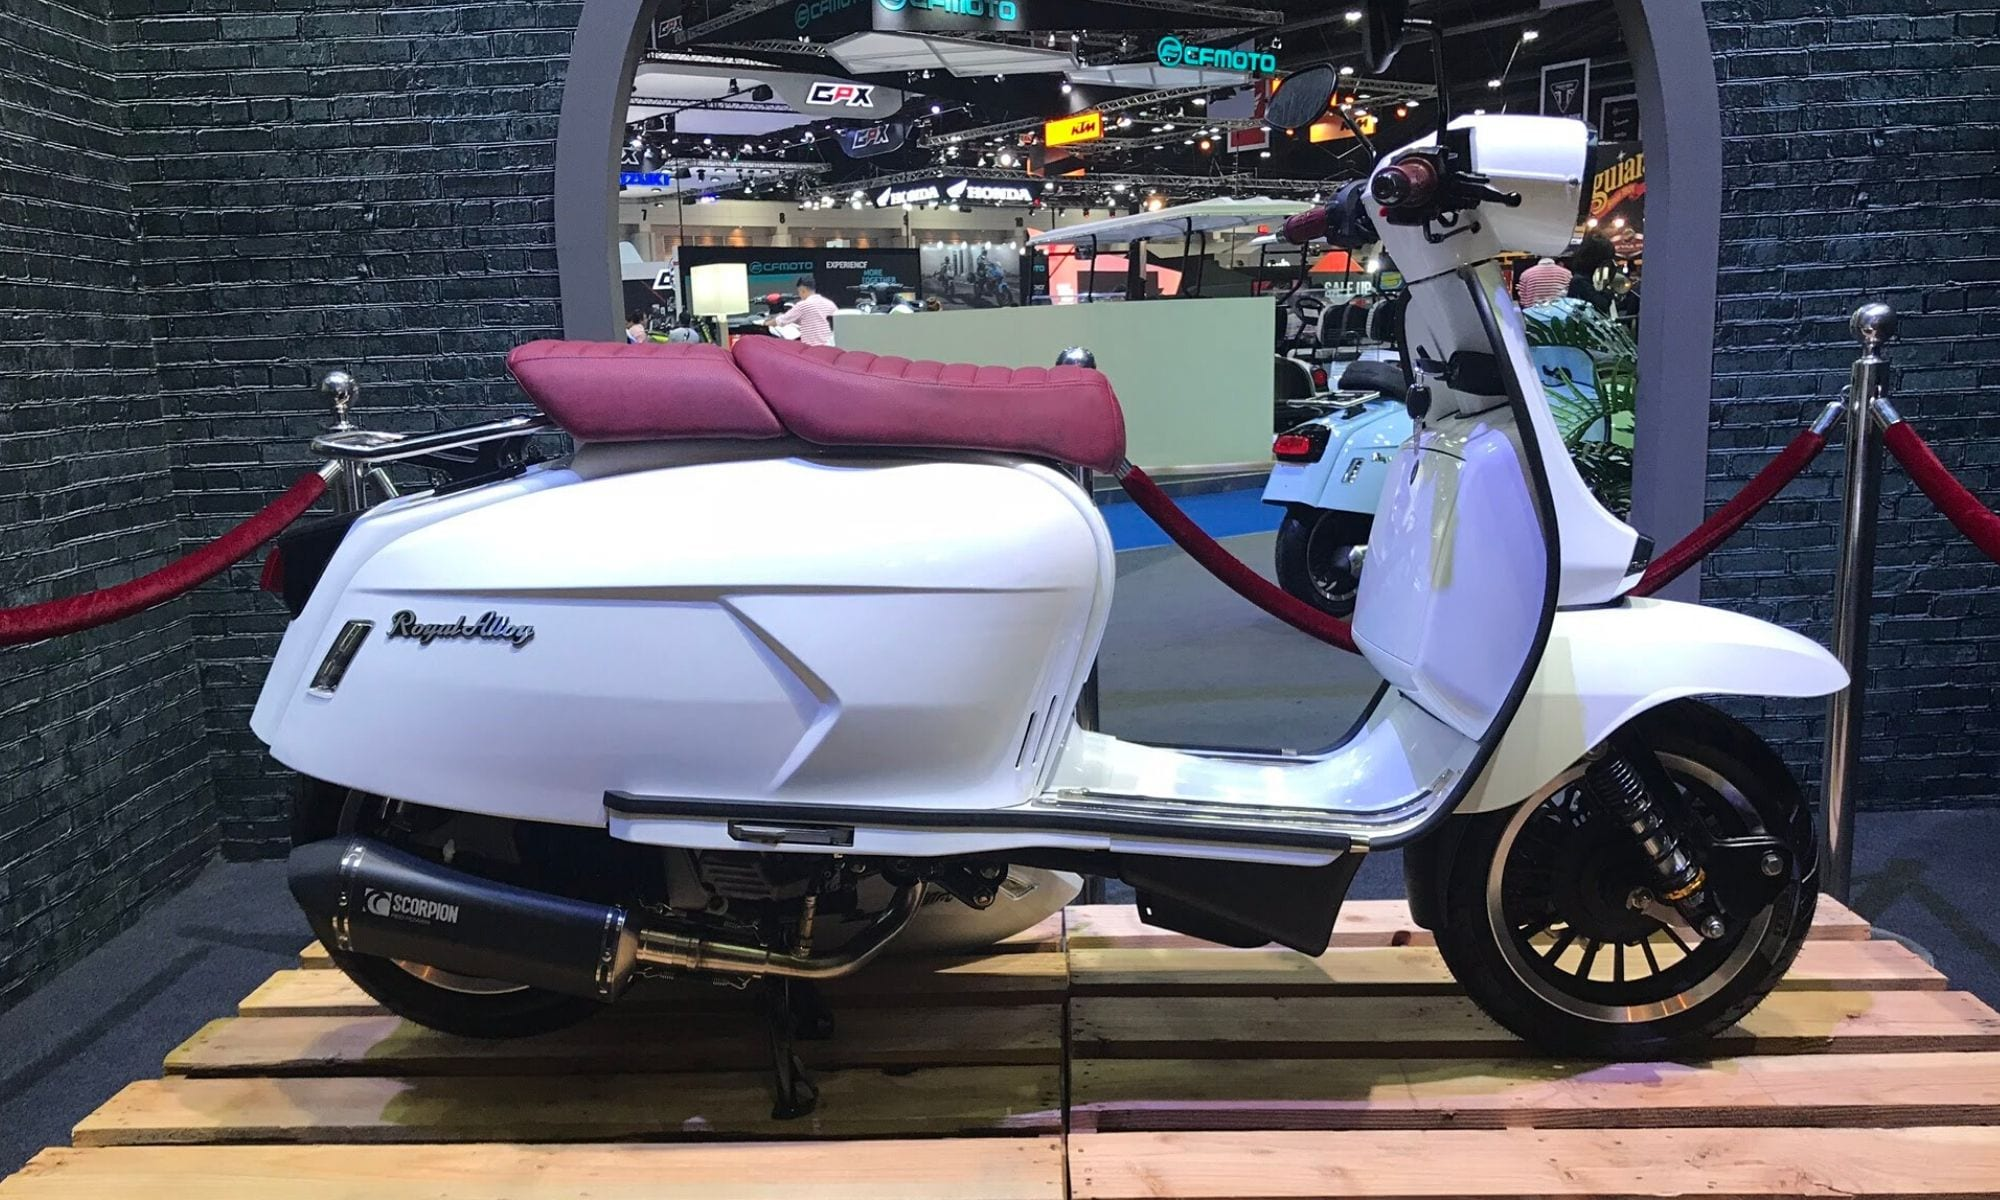 Royal Alloy Gp200 Ace Scooters Motorcycles